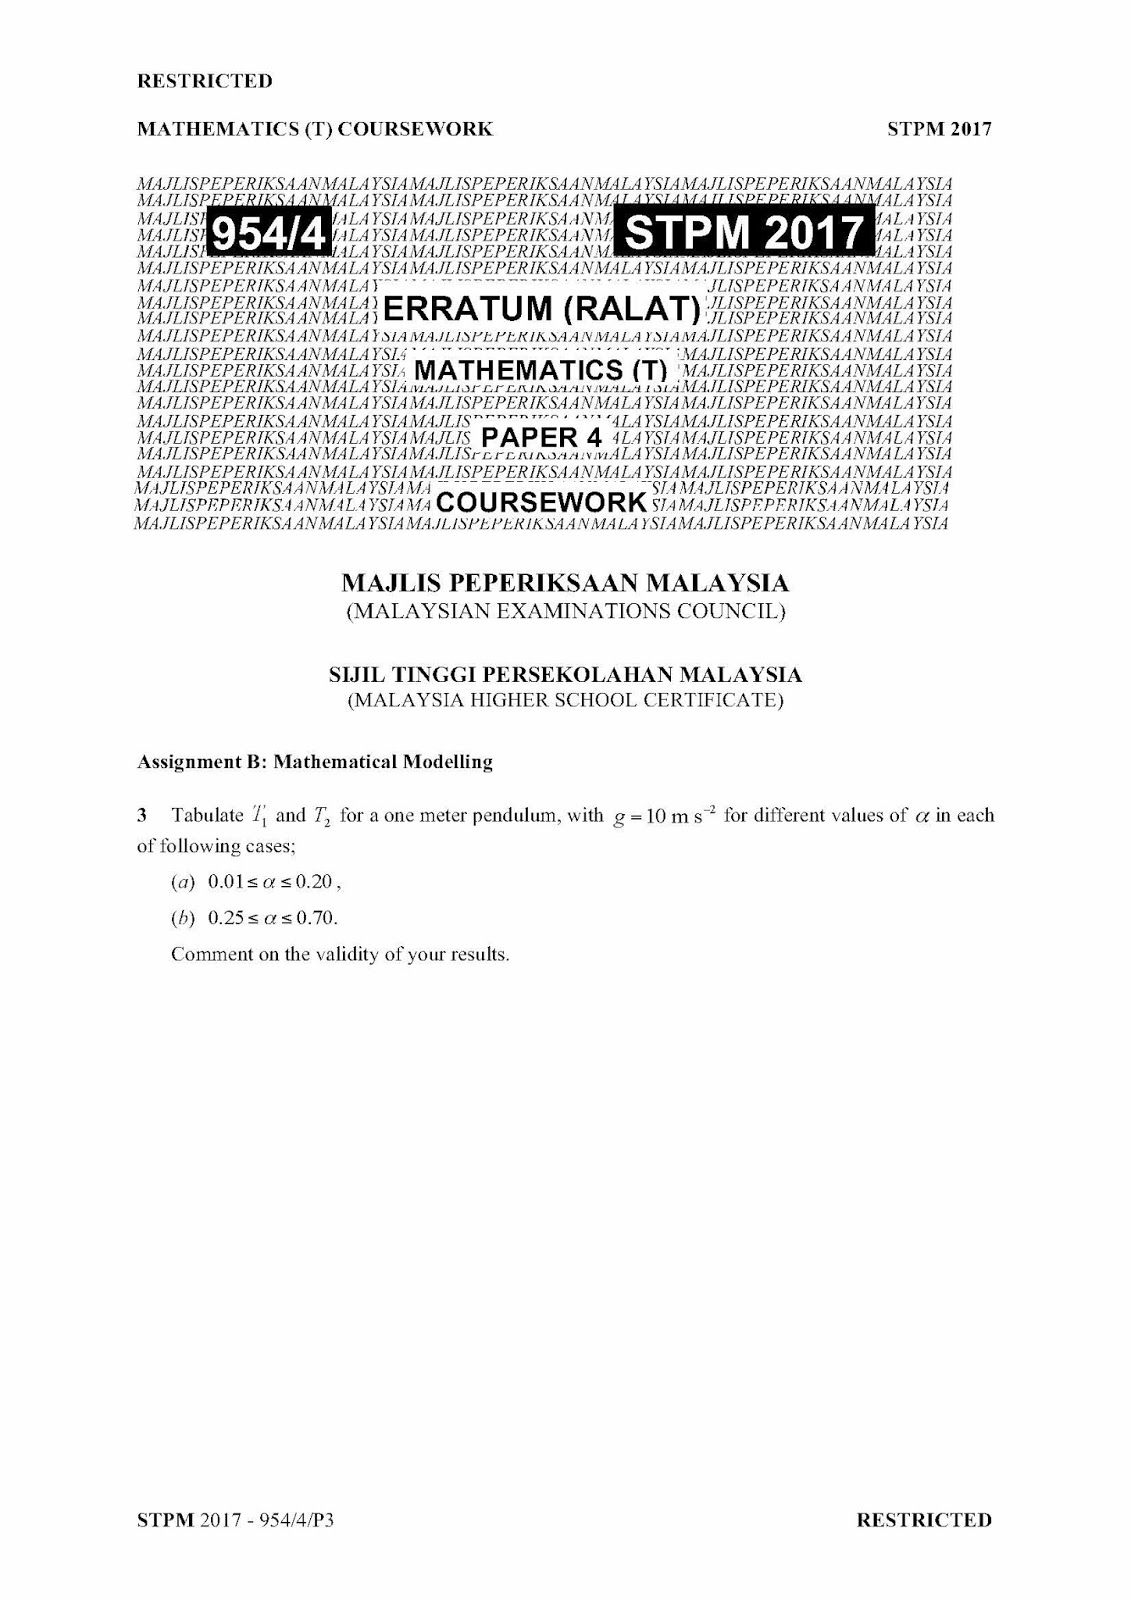 stpm math t coursework methodology